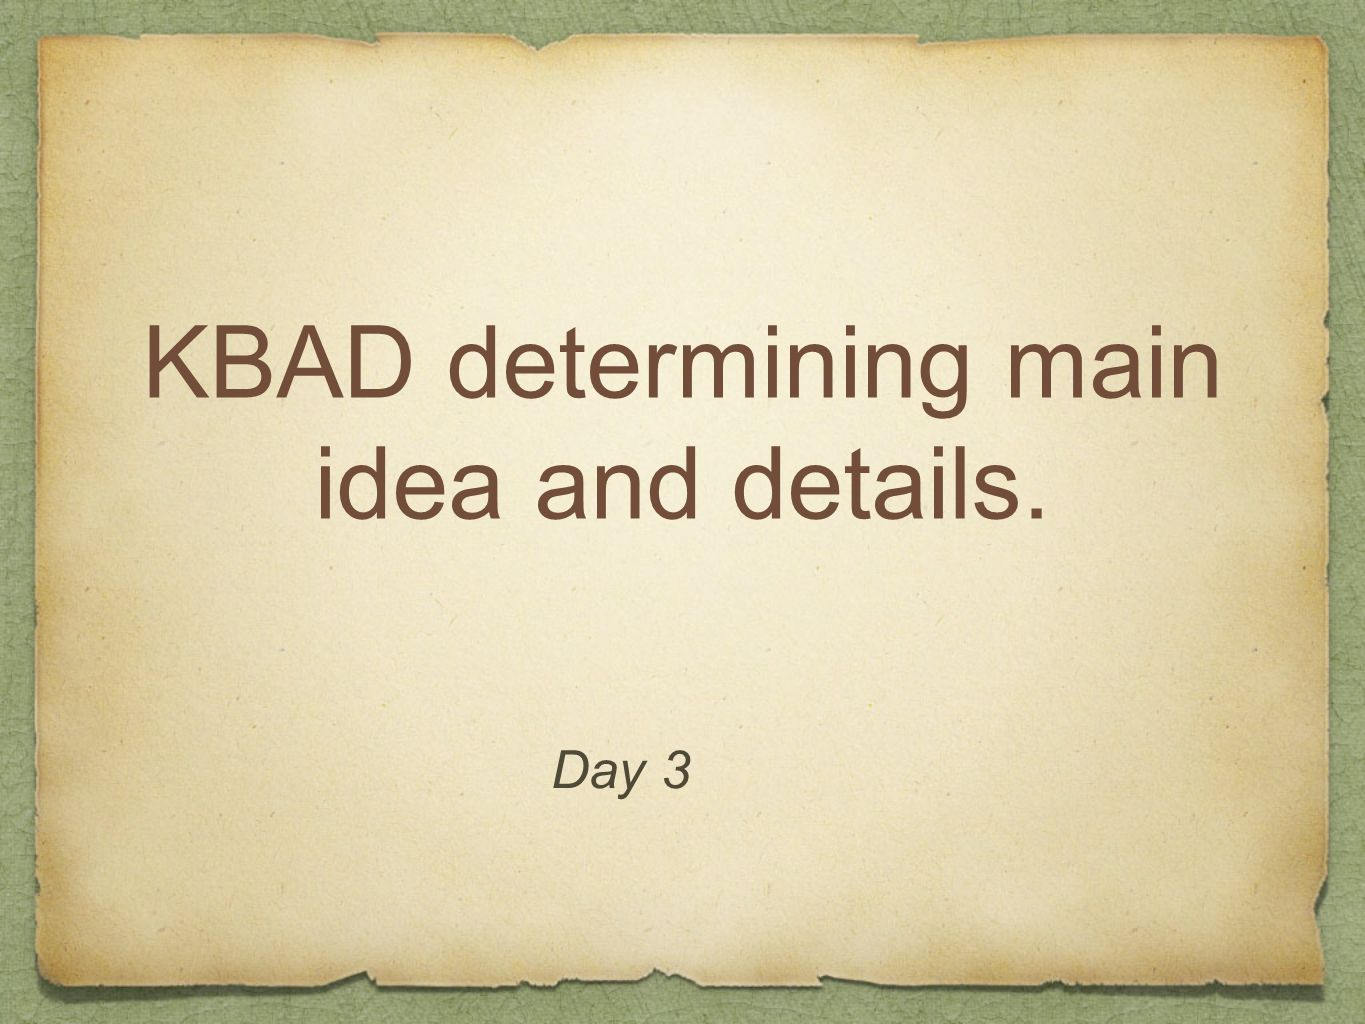 KBAD determining main idea and details.